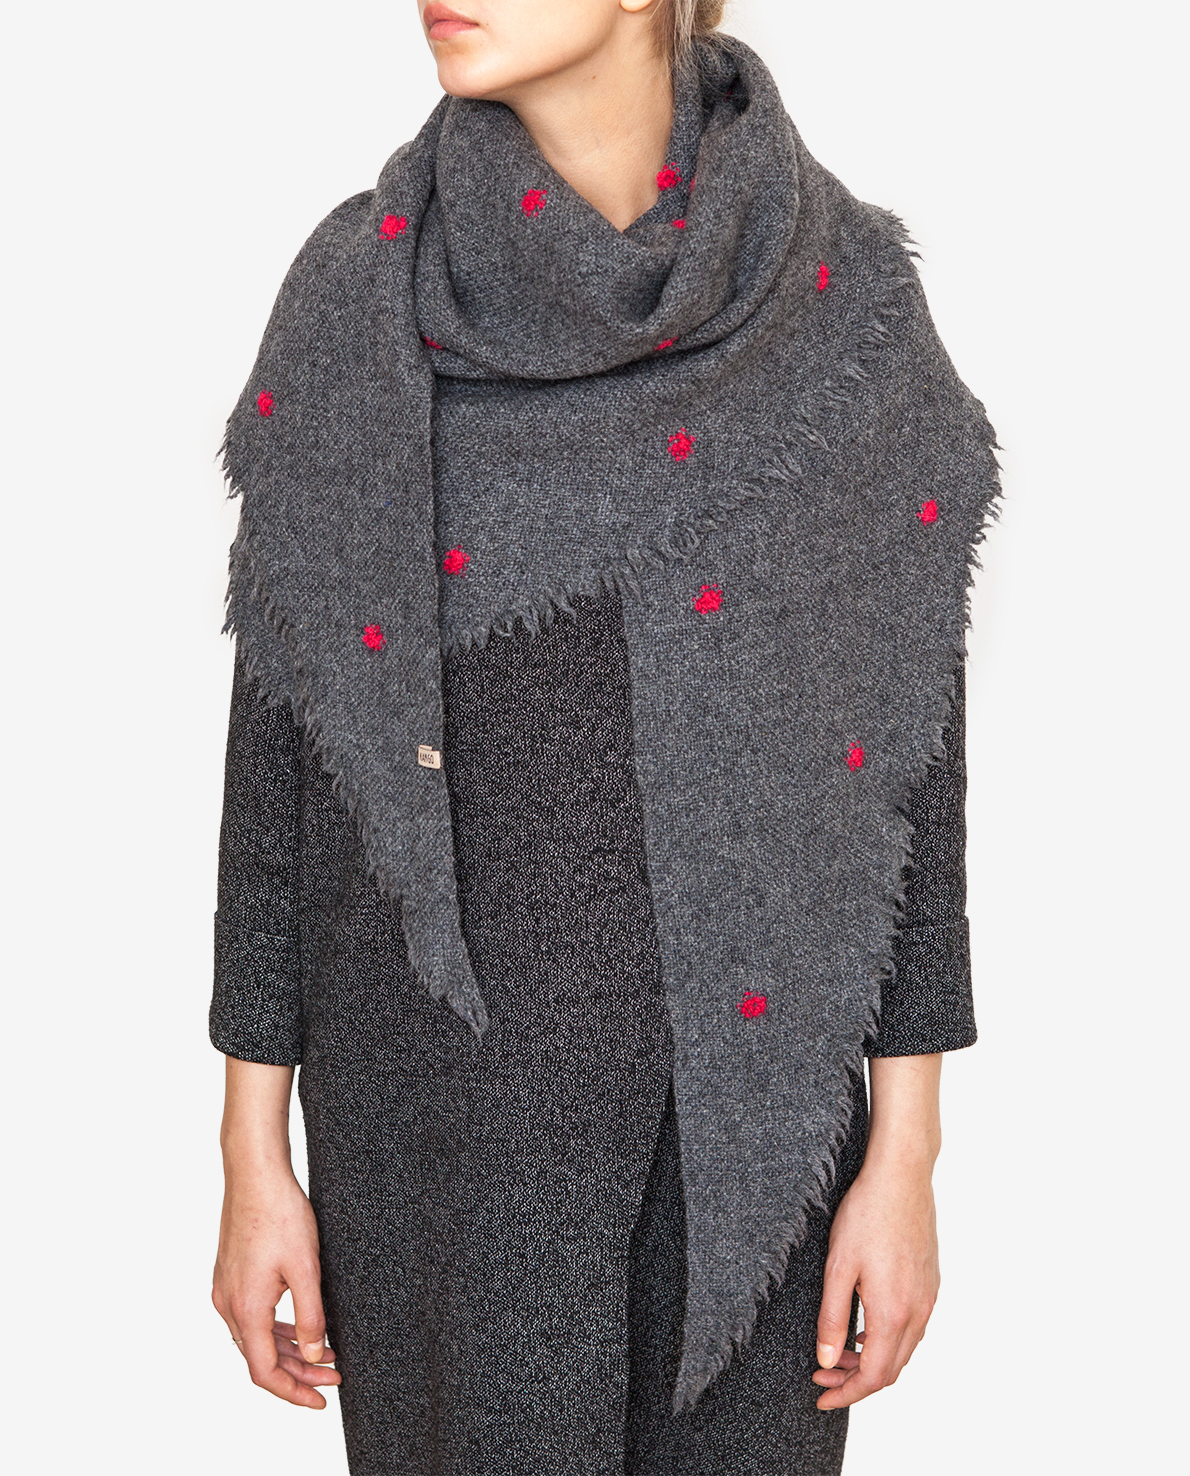 Shawl with red dots